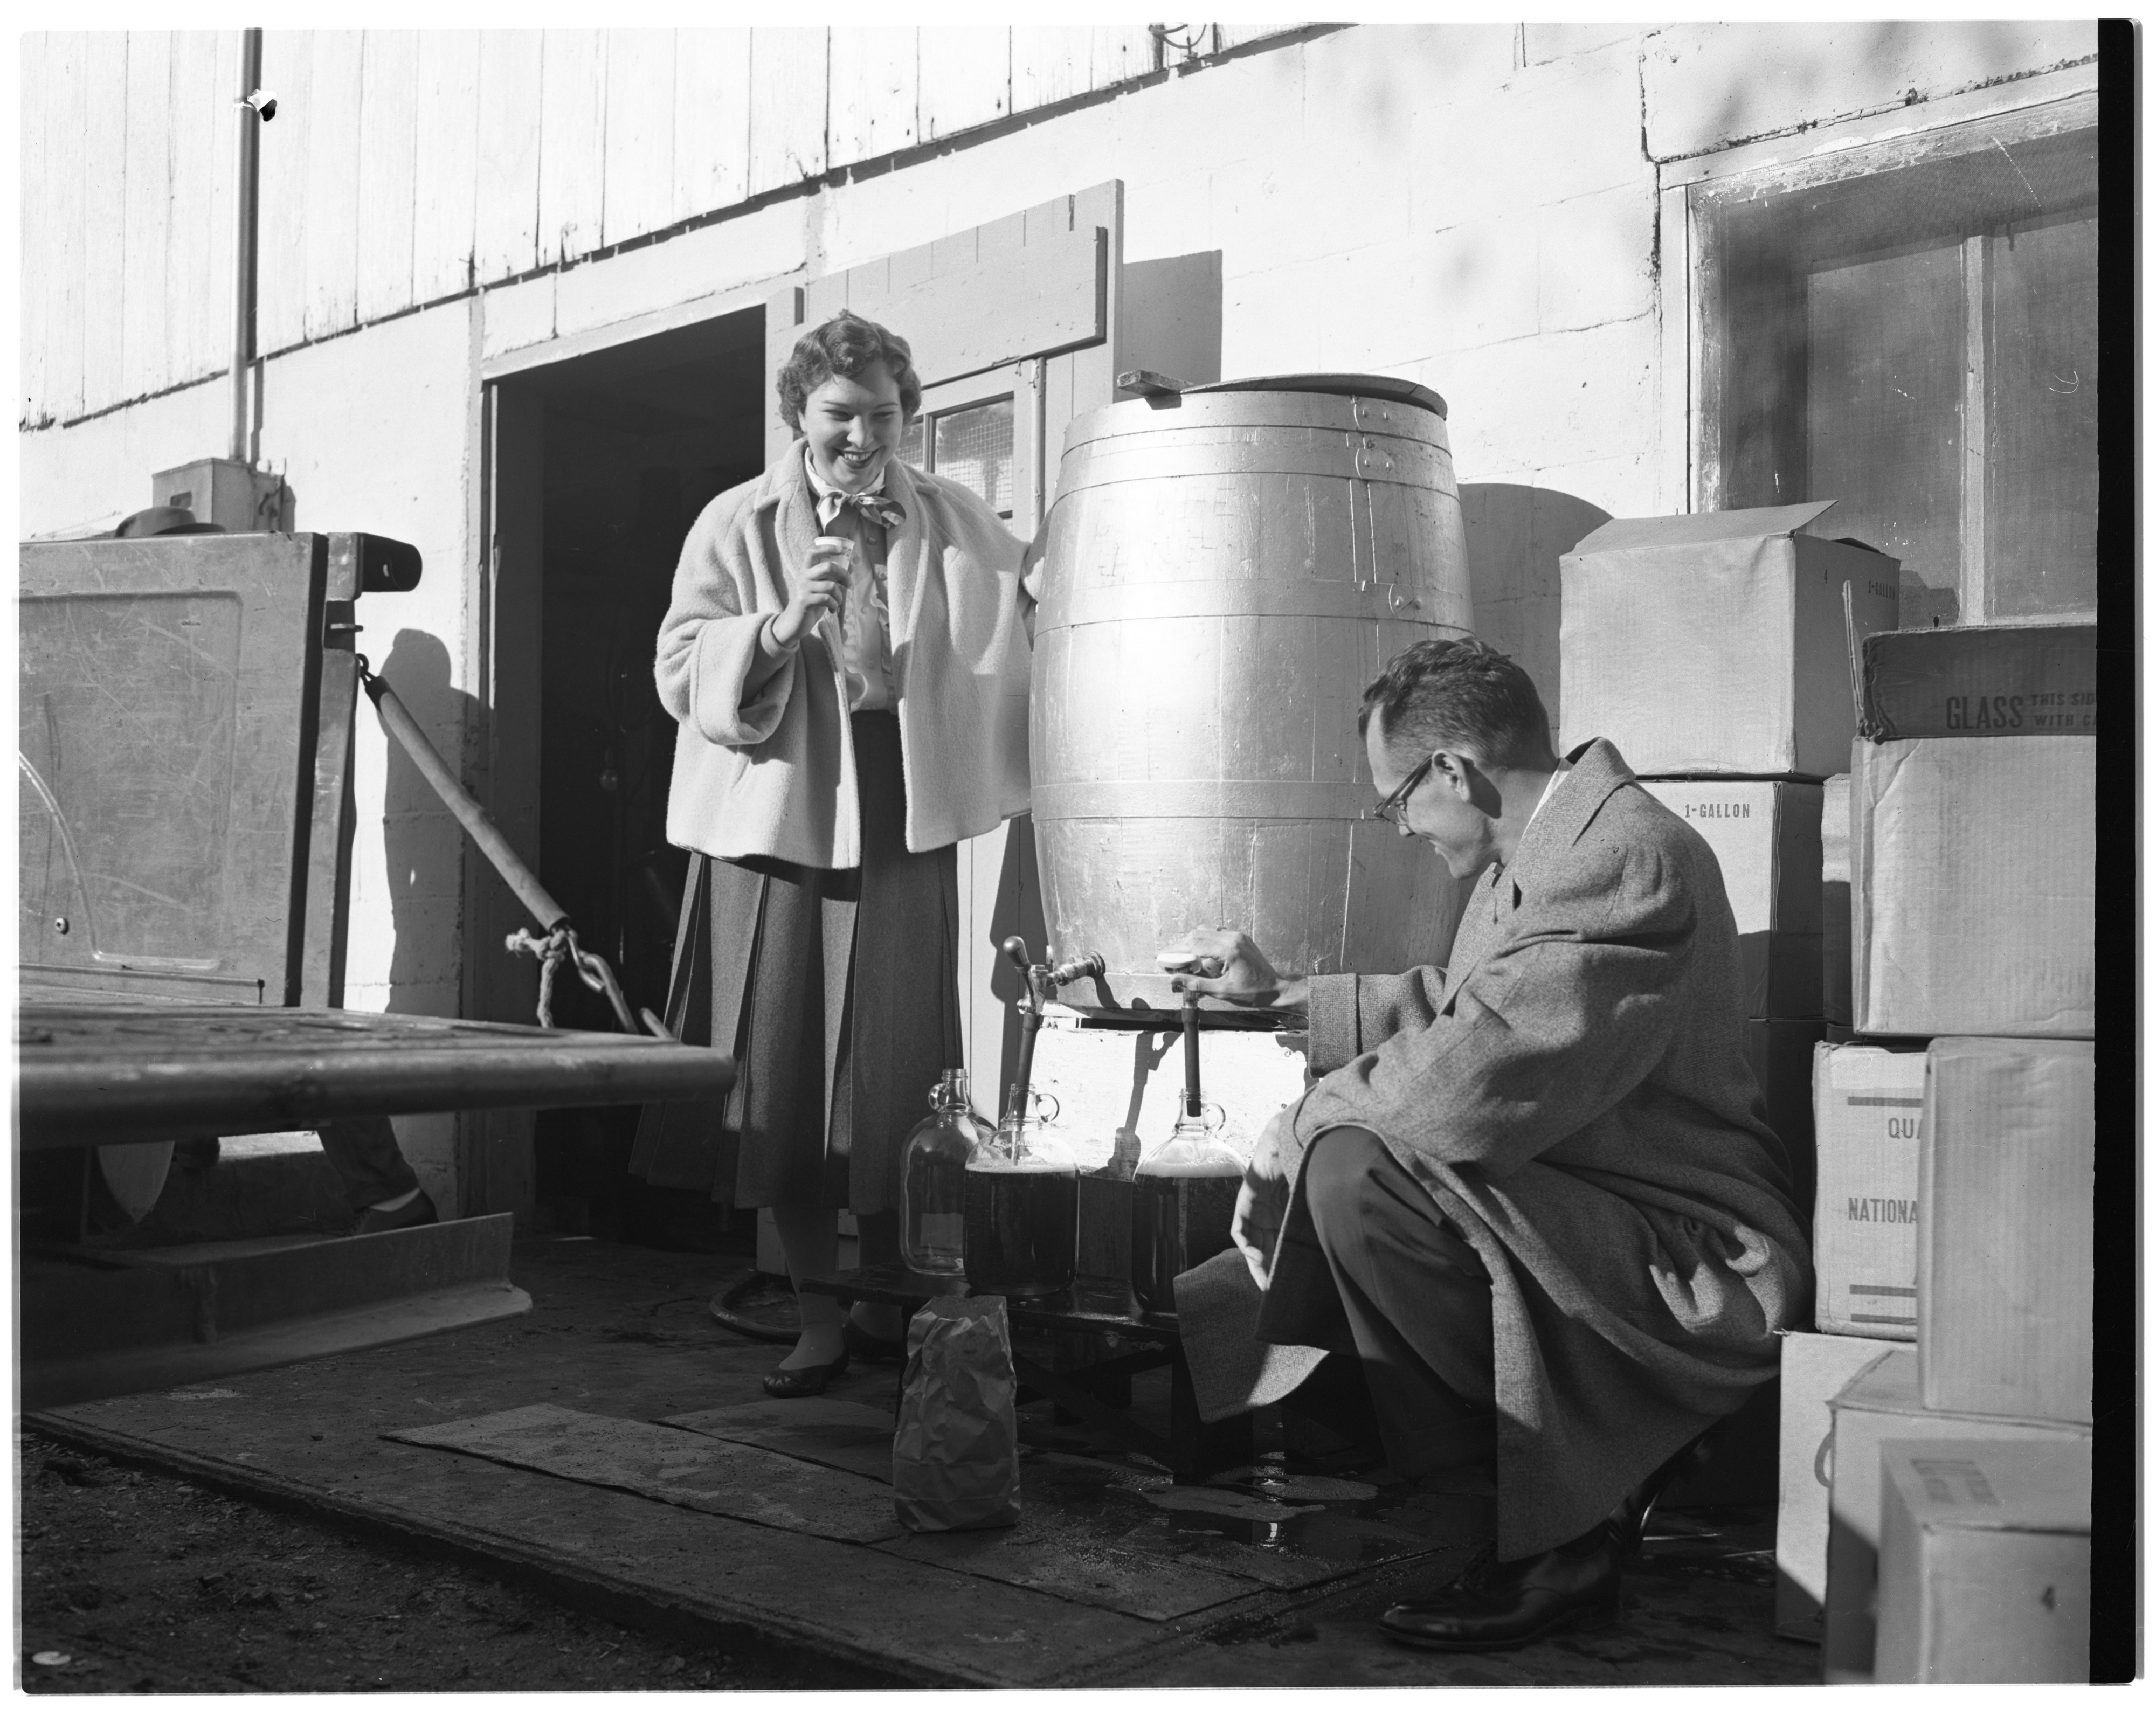 Dexter Cider Mill: O. Wagner and Son Filling Cider Jug image